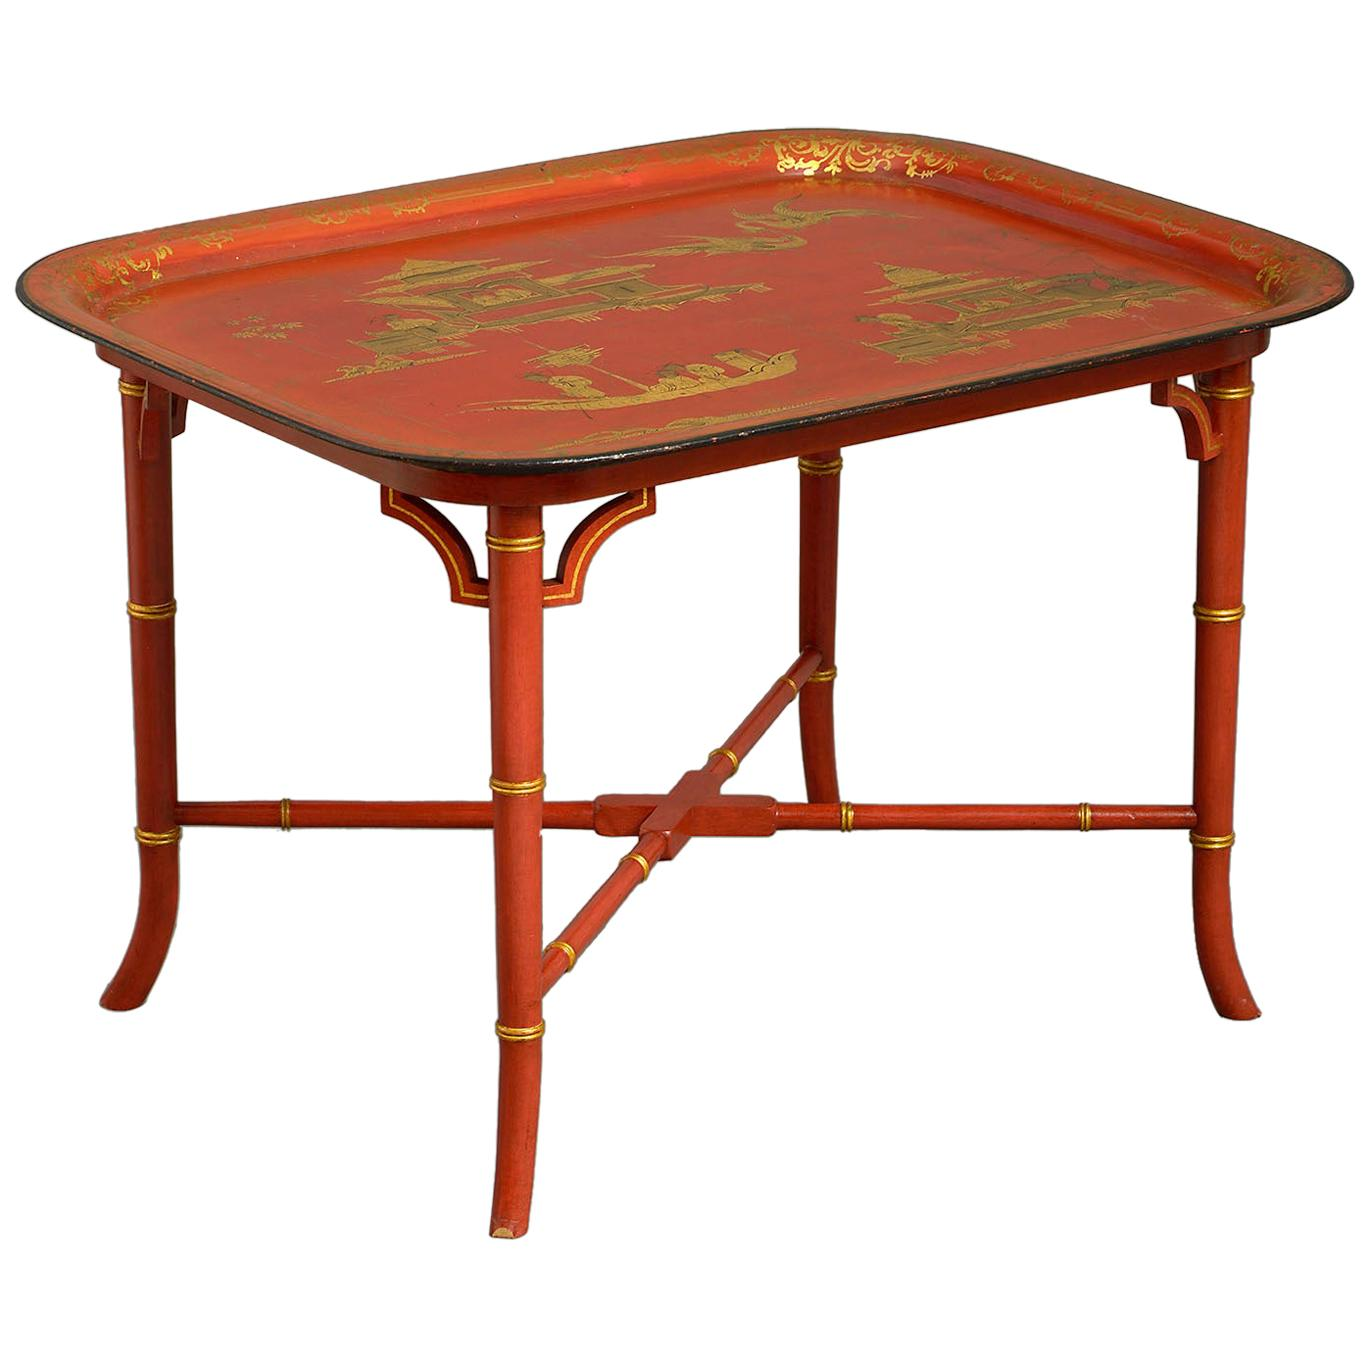 Early 19th Century Regency Japanned Tôle Tray forming a Coffee Table